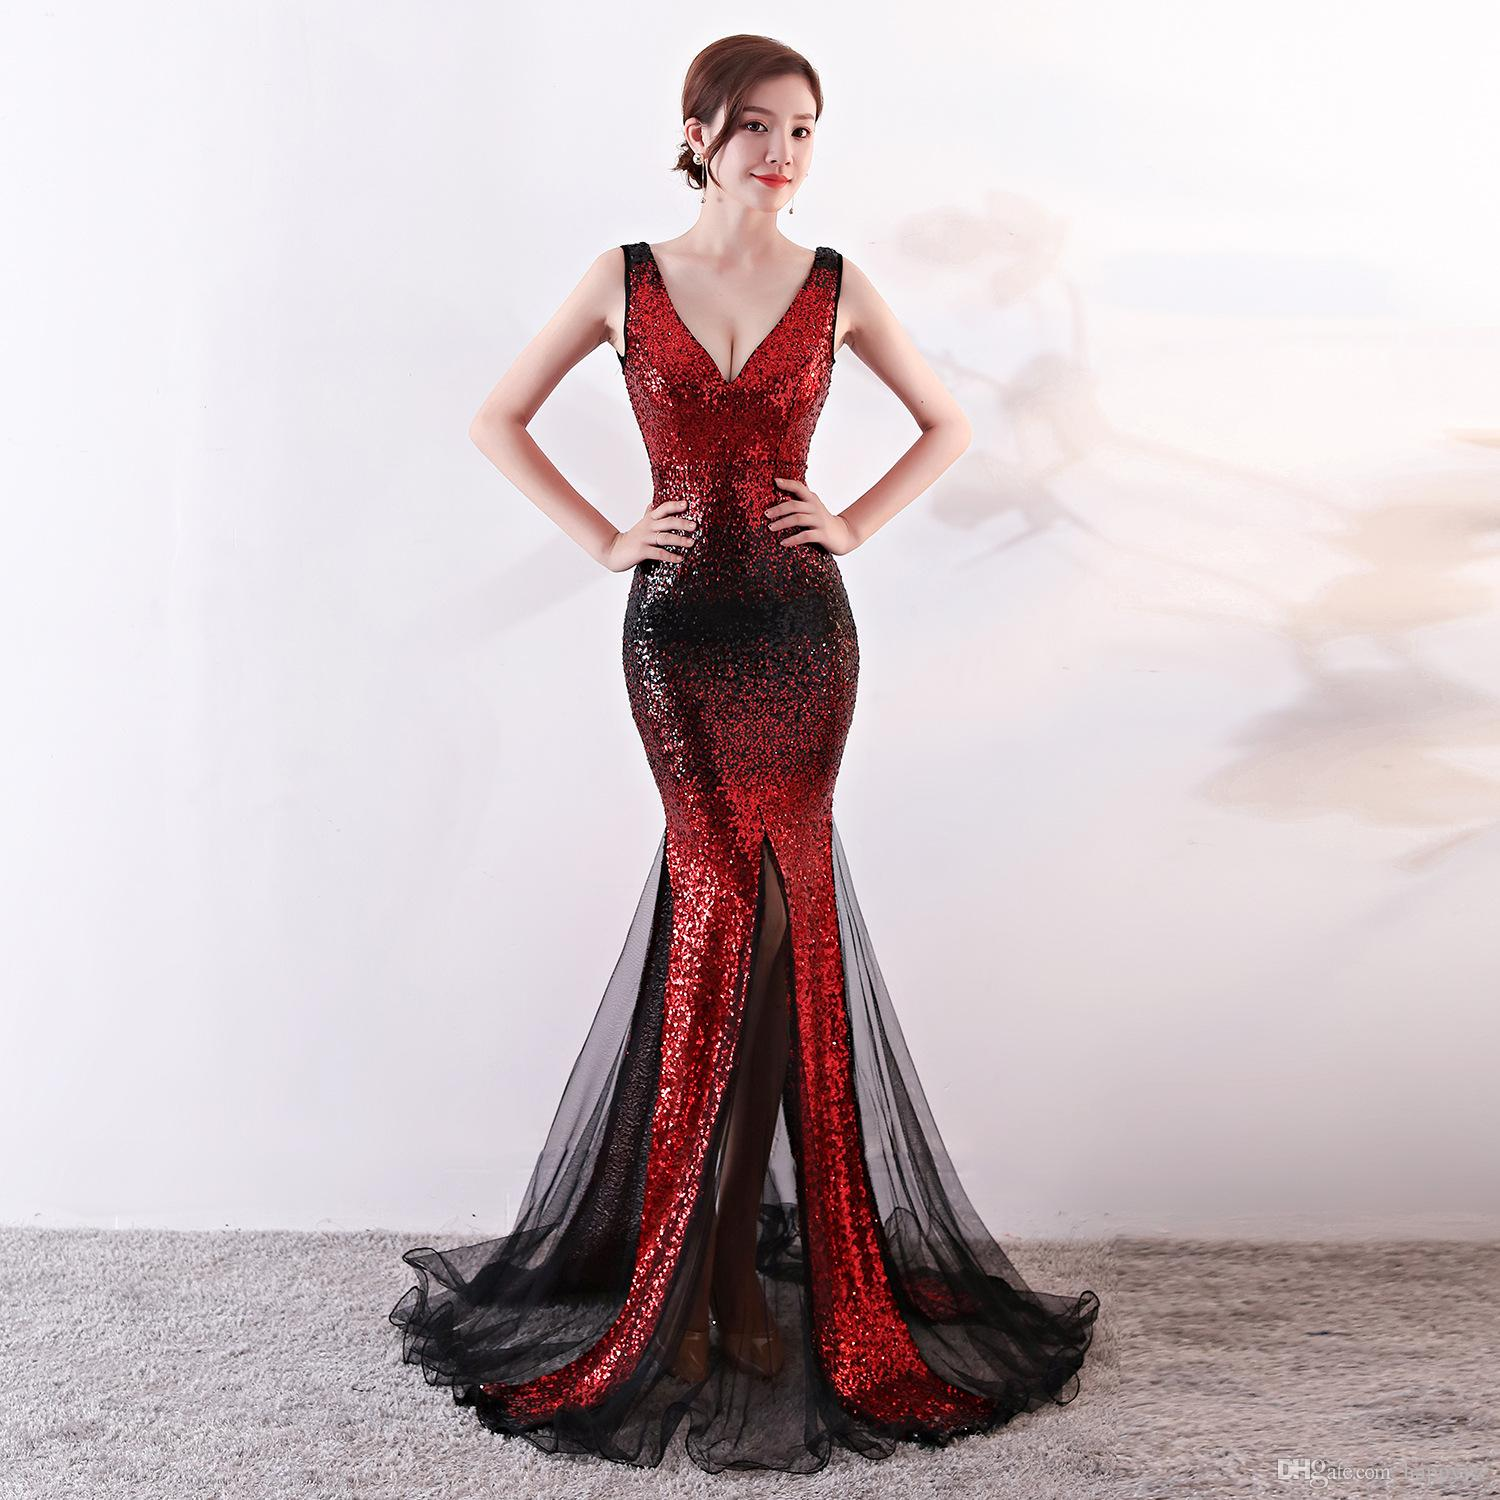 Sequined V Neck Mermaid 2018 New Women S Elegant Long Gown Party Prom For  Gratuating Date Ceremony Gala Evening Dresses A08 Long Black Evening Dresses  Long ... 637340161b67